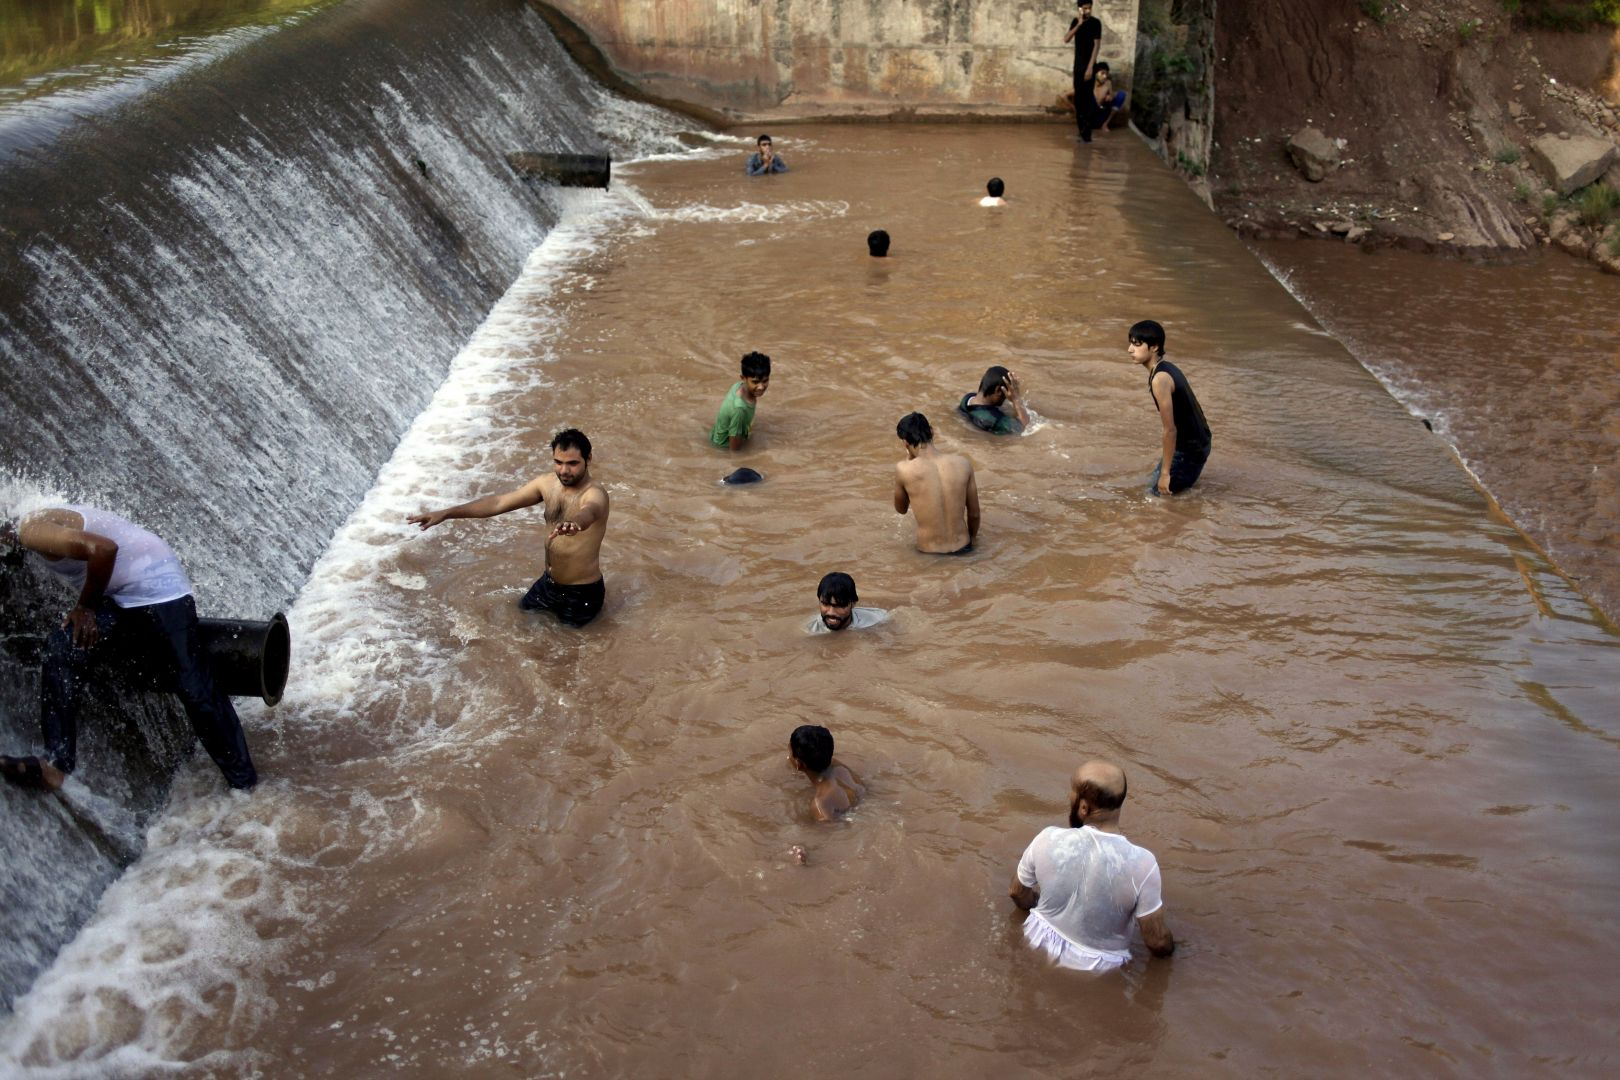 Pakistani youths cool off themselves at a river on the outskirts of Islamabad, Pakistan, Sunday, June 21, 2015. Photo: AP